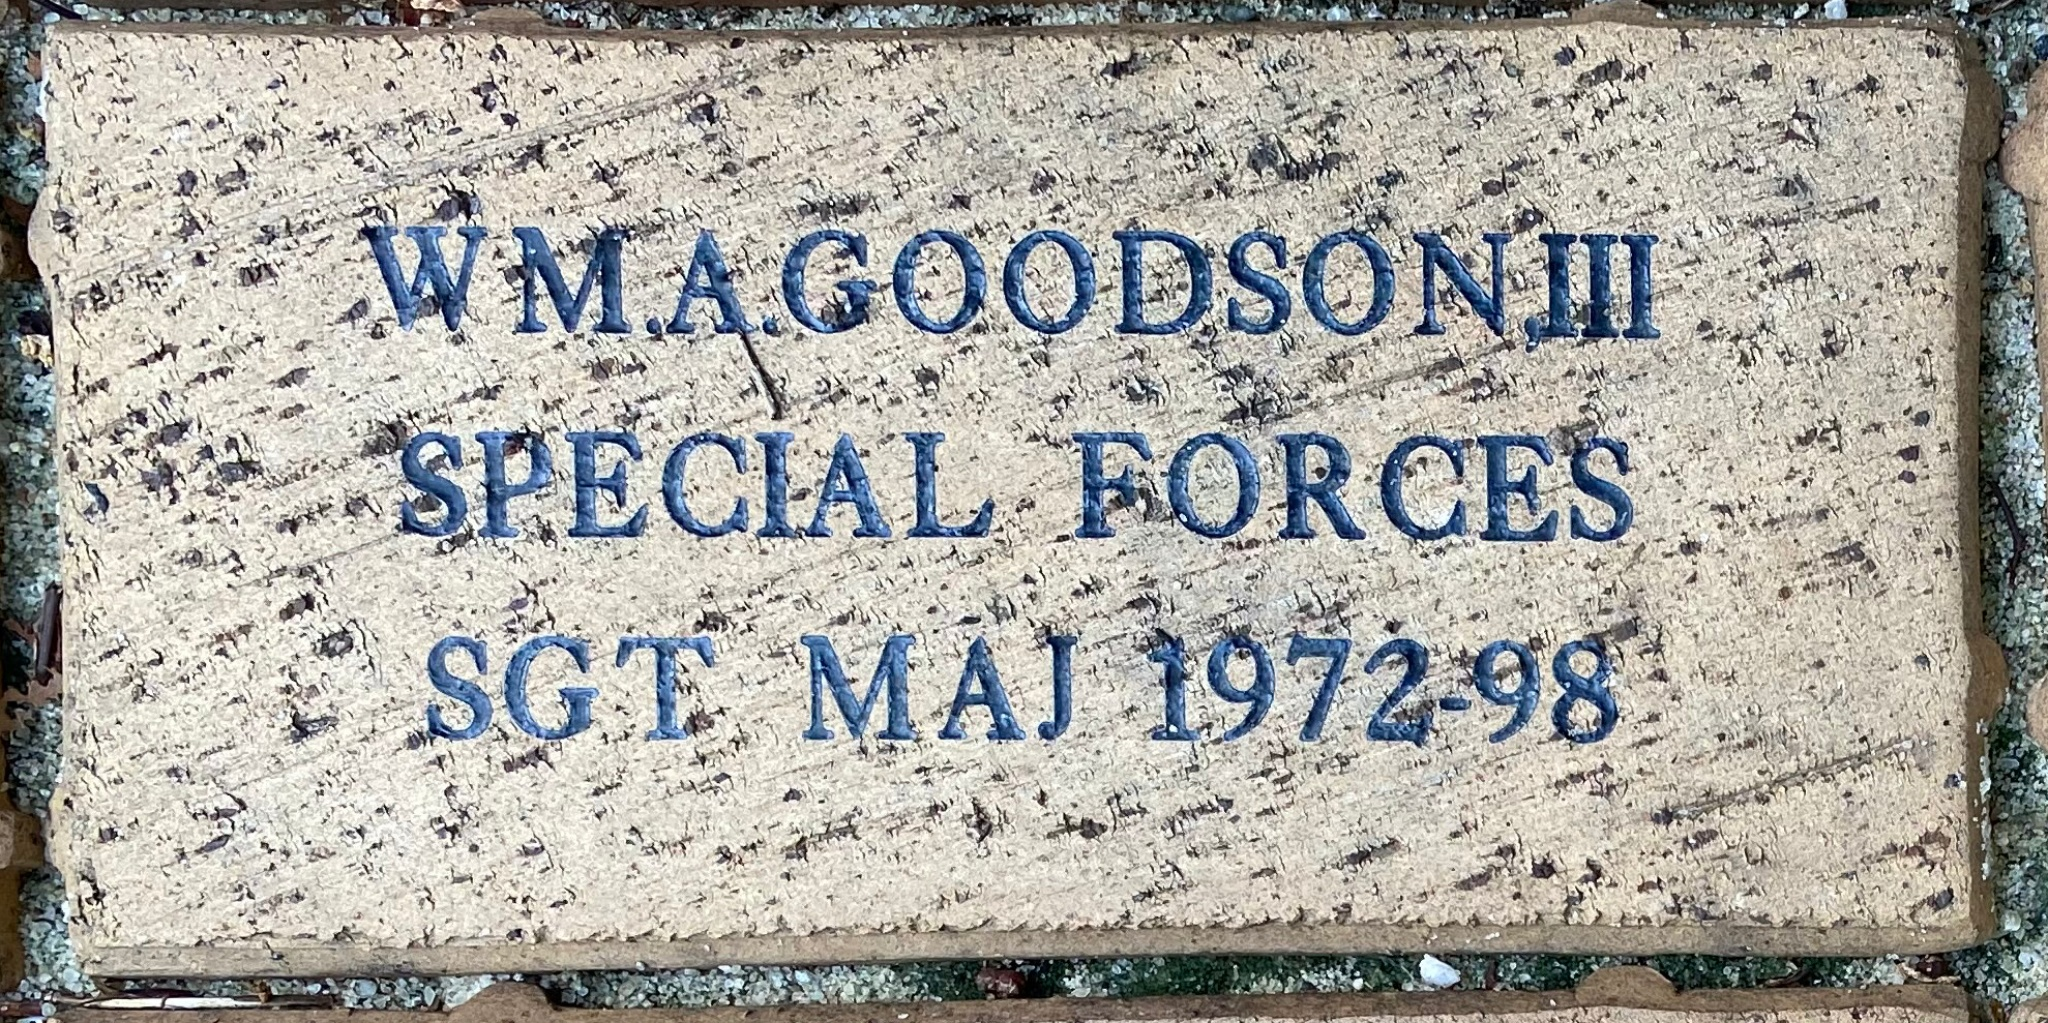 WM.A.GOODSON III SPECIAL FORCES SGT MAJ 1972-98